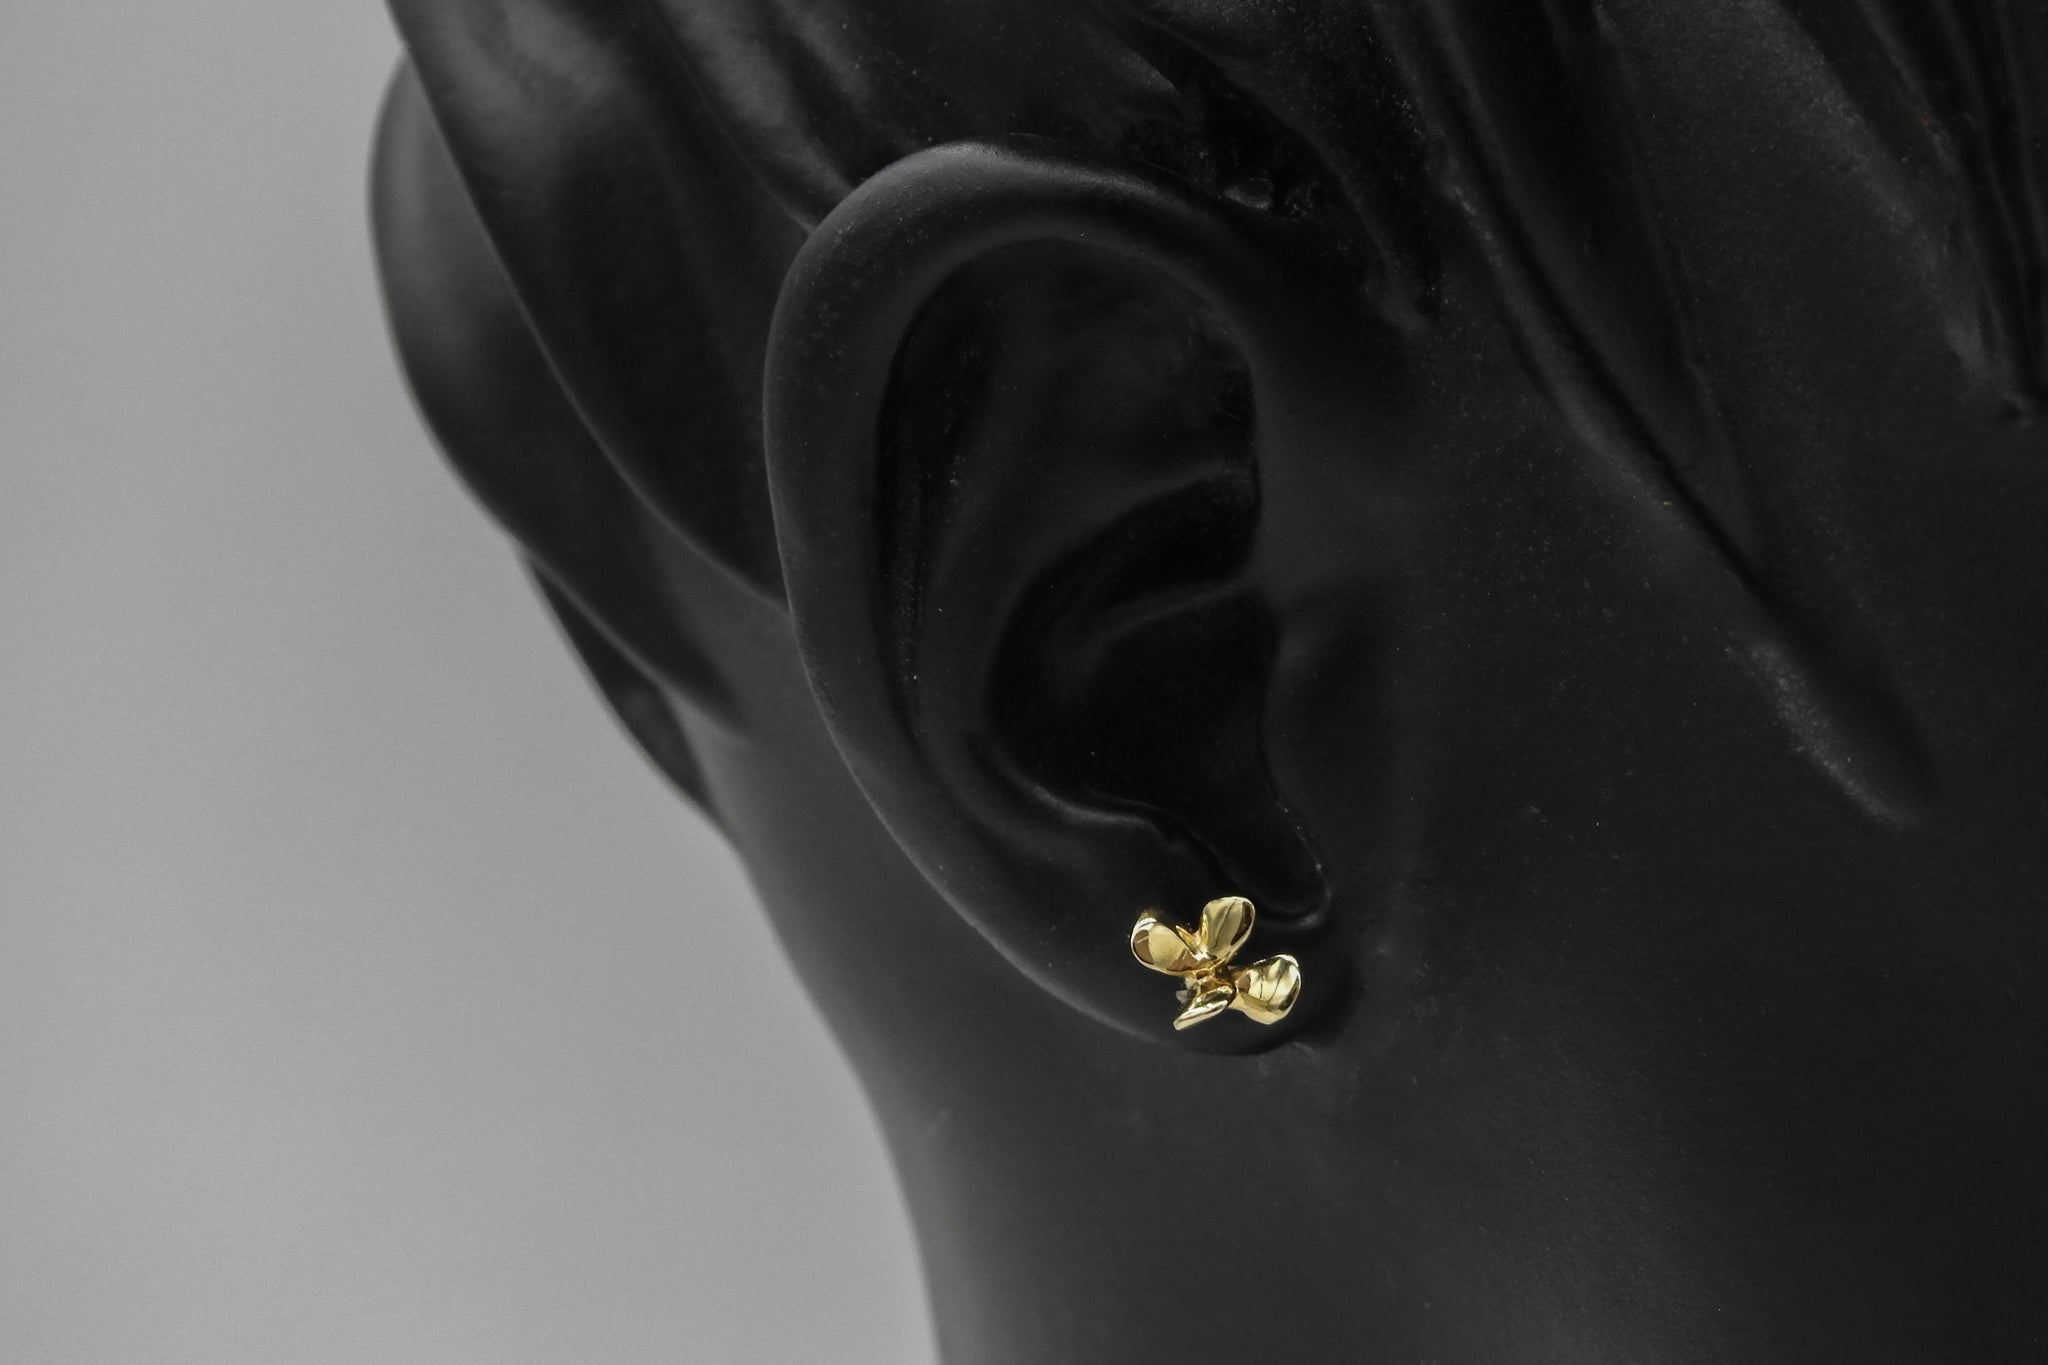 4-Petals Earrings